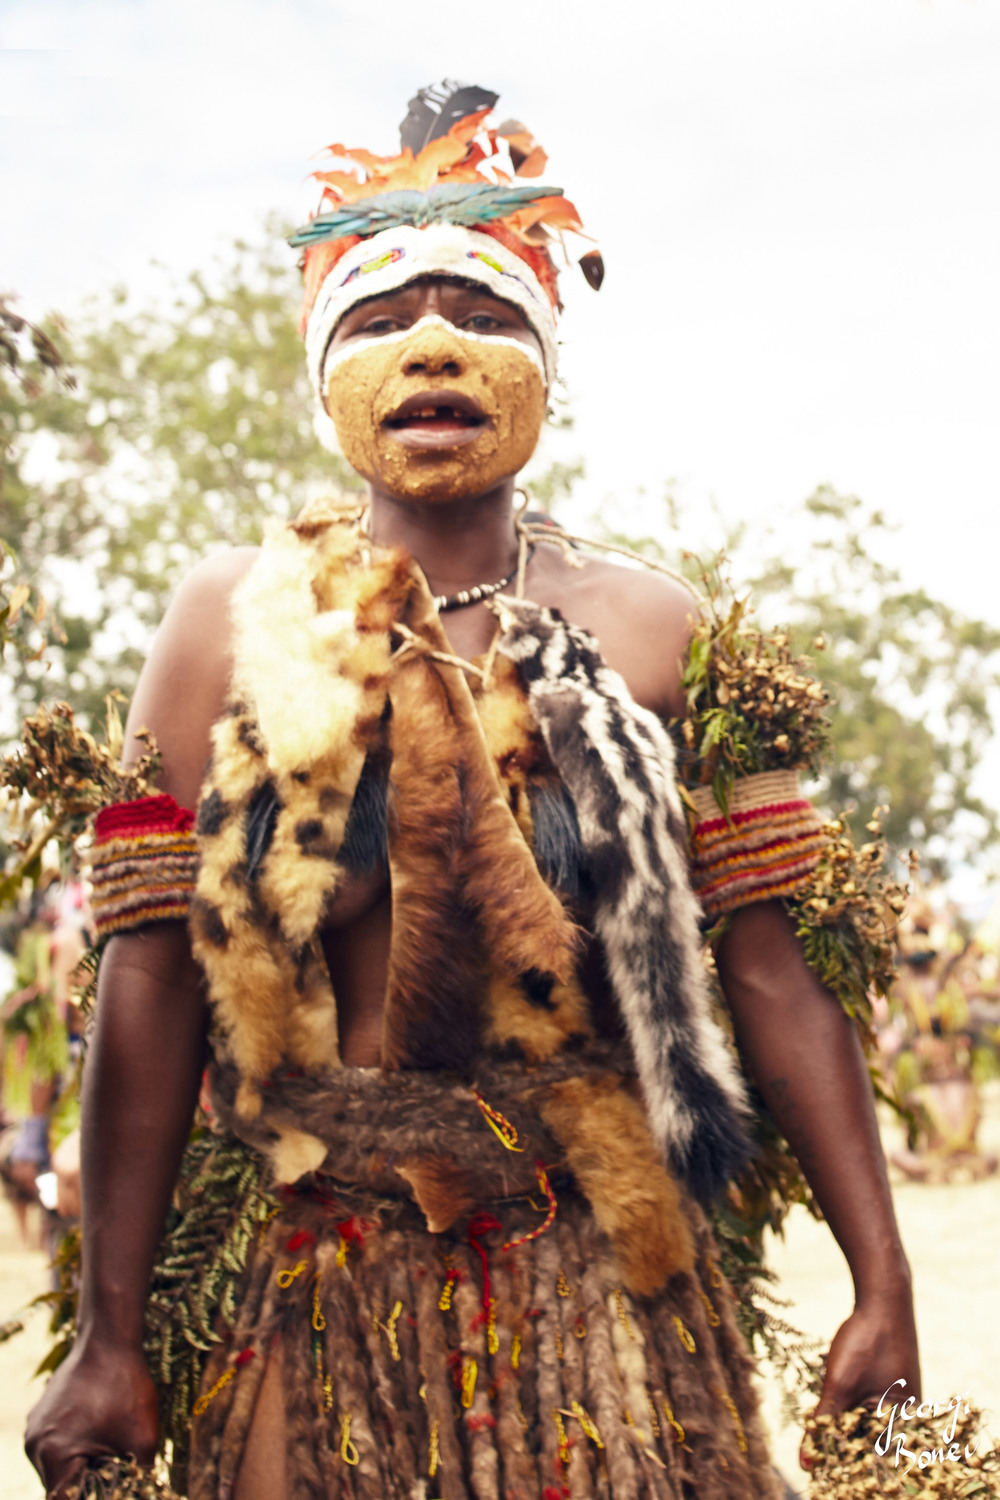 ARANGO WOMAN IN PAPUA NEW GUINEA